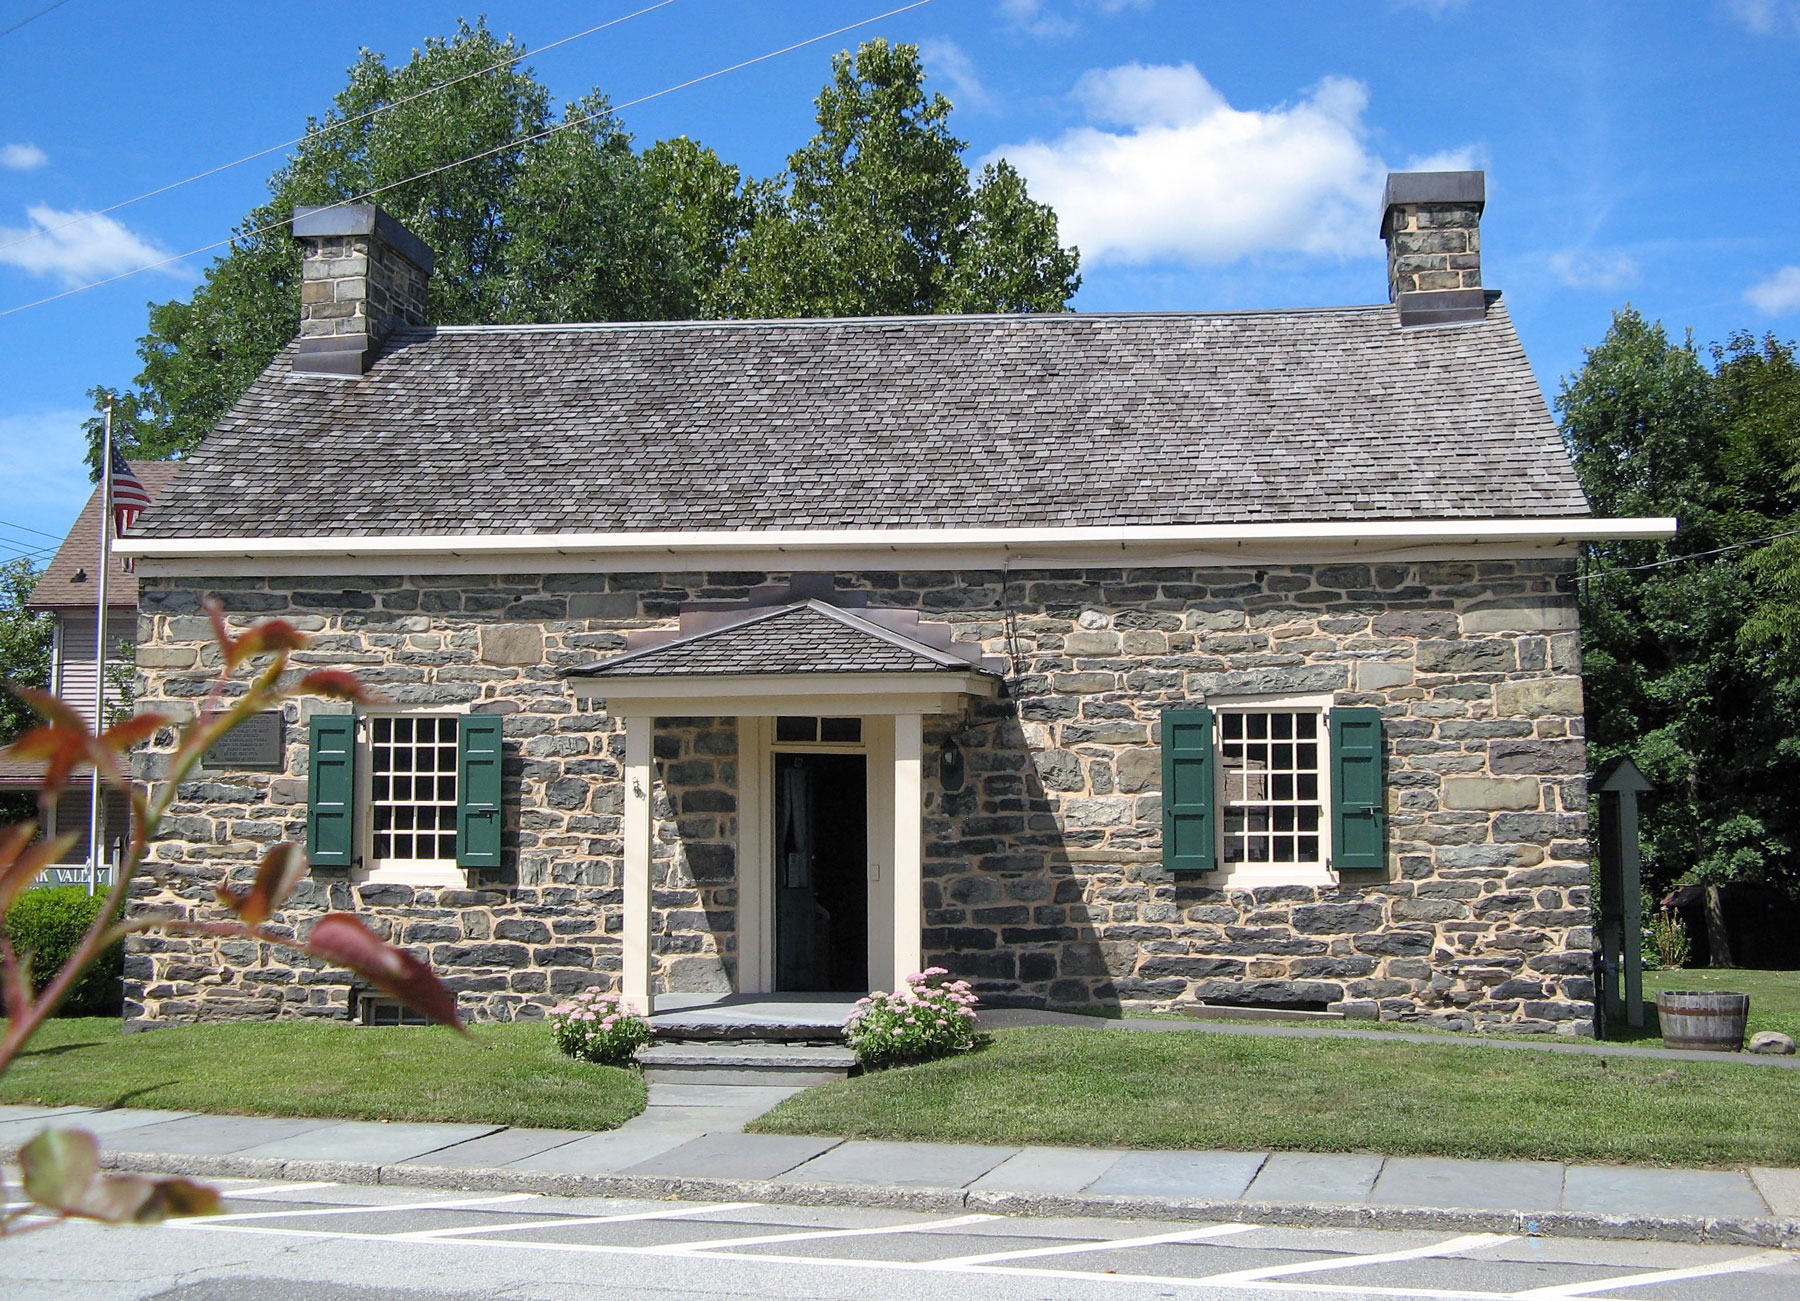 """""""Fort Decker/Old Stone House,"""" Port Jervis, New York, rebuilt in 1793, present location of the Minisink Valley Historical Society. Photograph courtesy of the Minisink Valley Historical Society."""